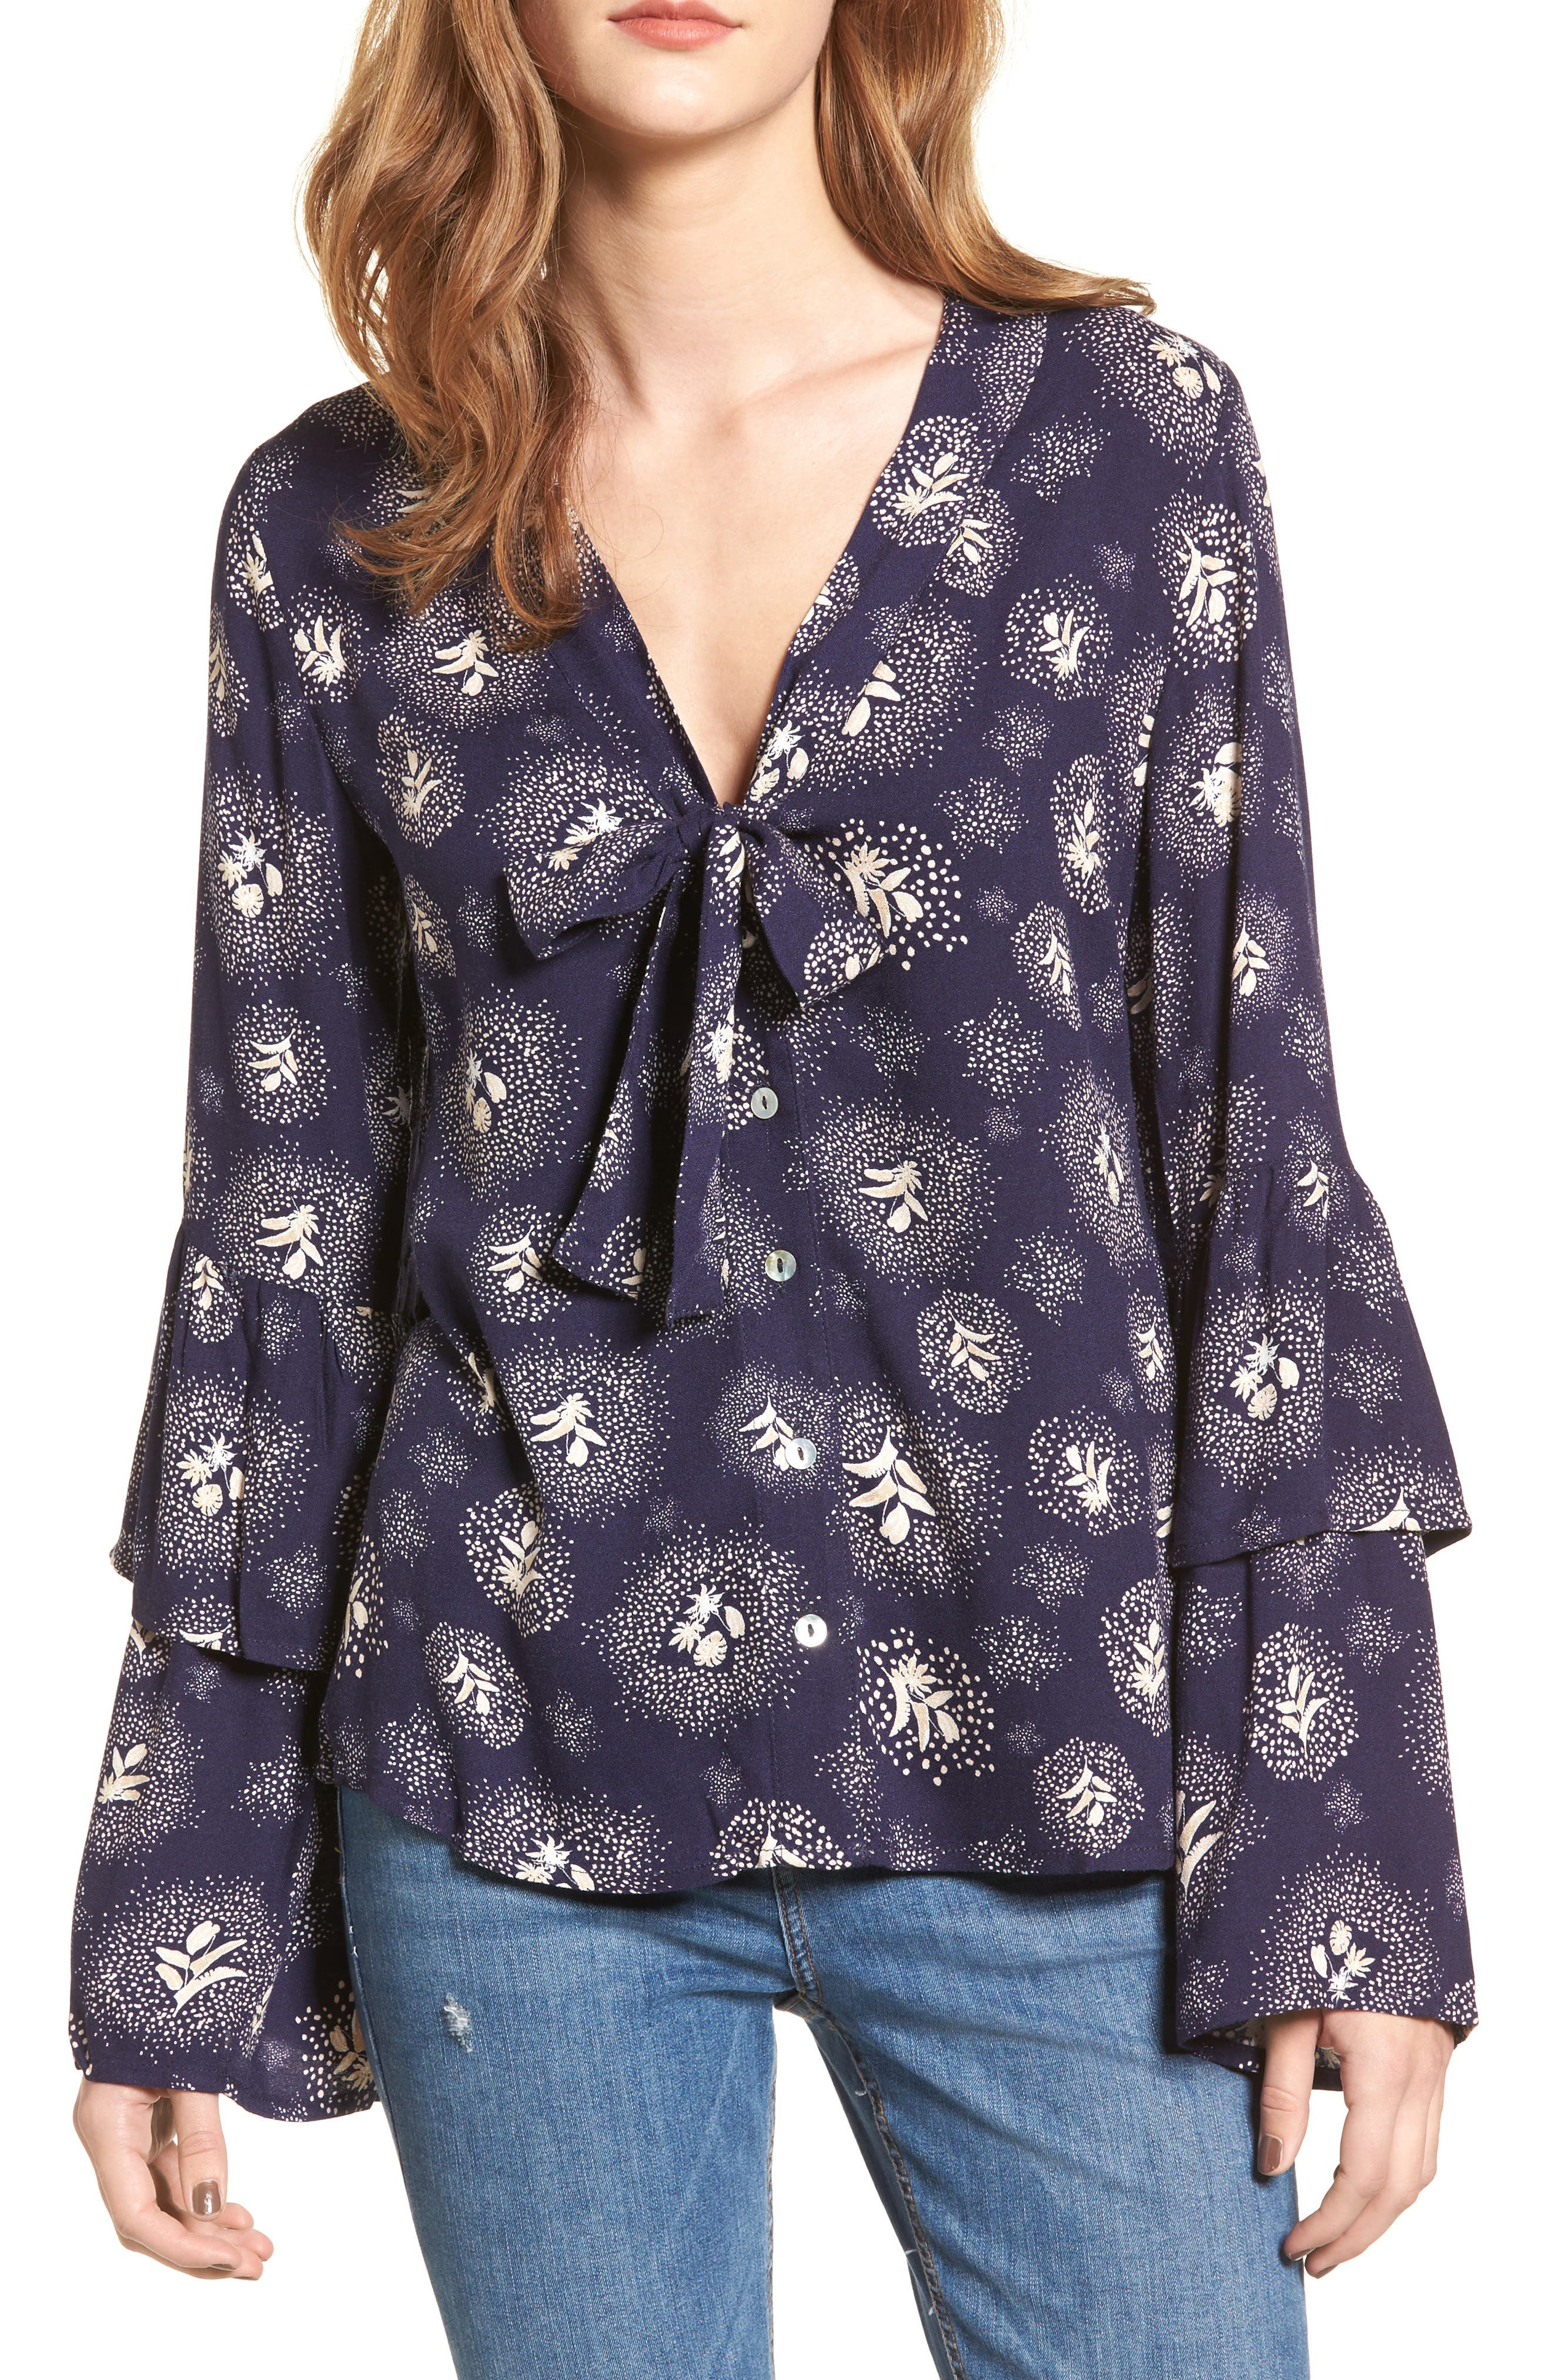 Glimmering Nights Blouse,                             Main thumbnail 1, color,                             400